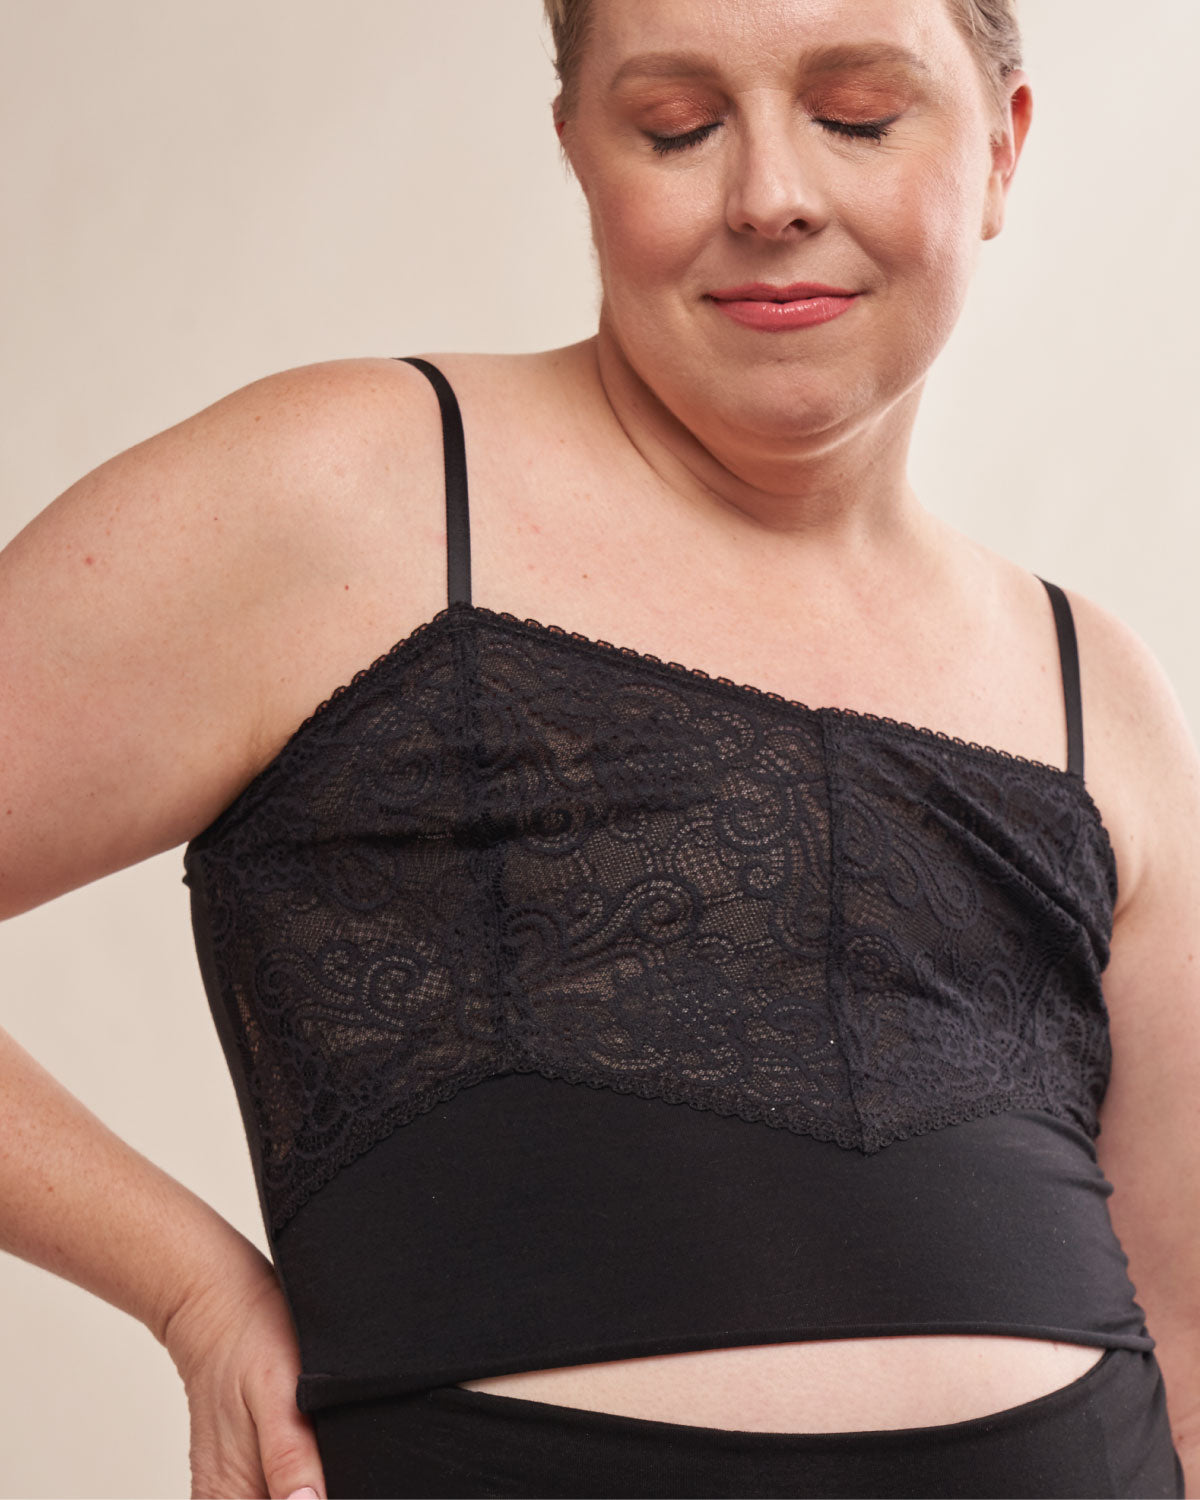 Black, pocketed cropped lace cami with adjustable straps, lettuce hem detail and soft modal on flat chest model.